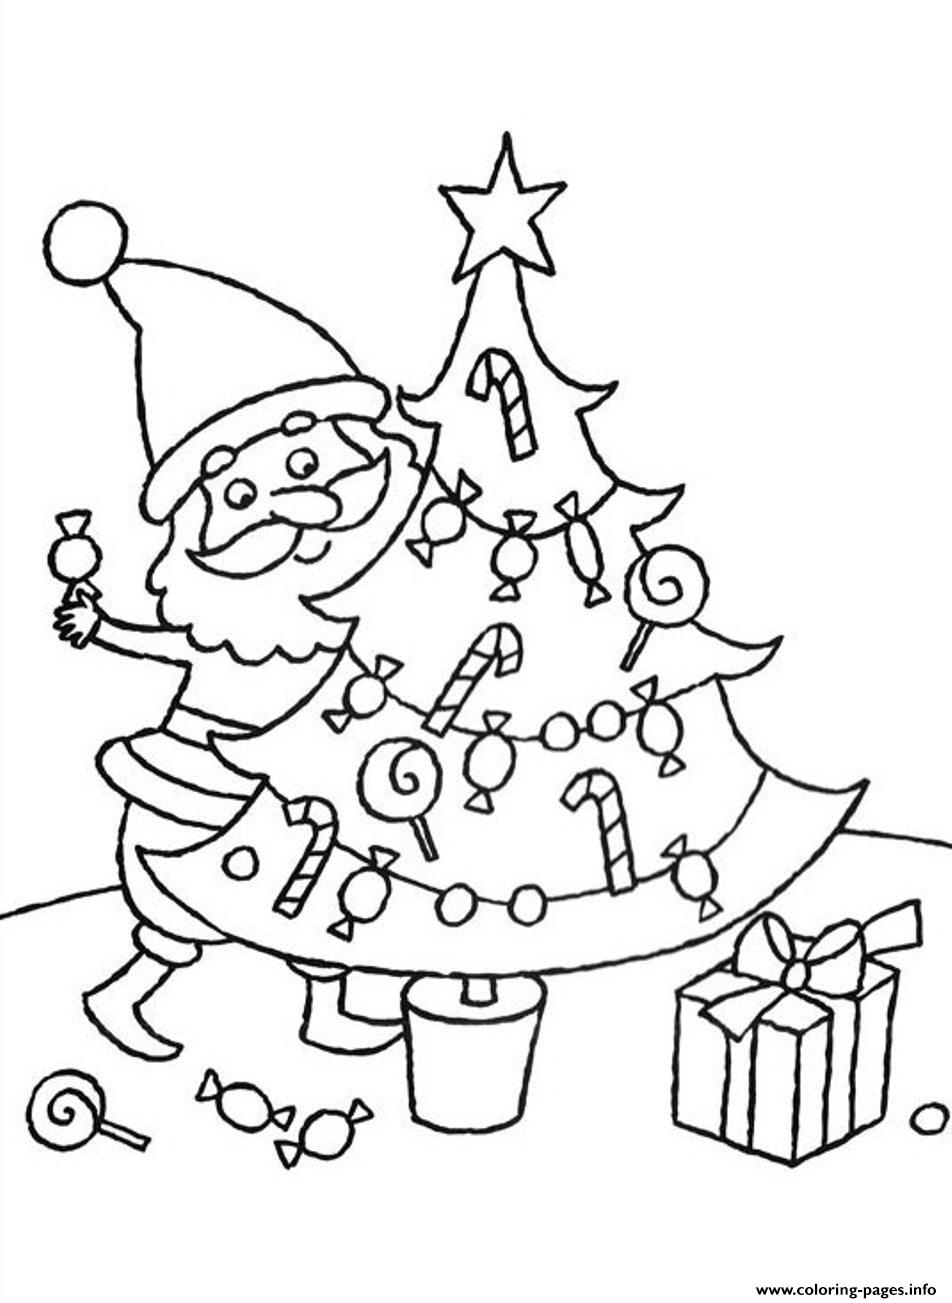 Santa Decorating Christmas Tree Free S Christmas 6a80 coloring pages